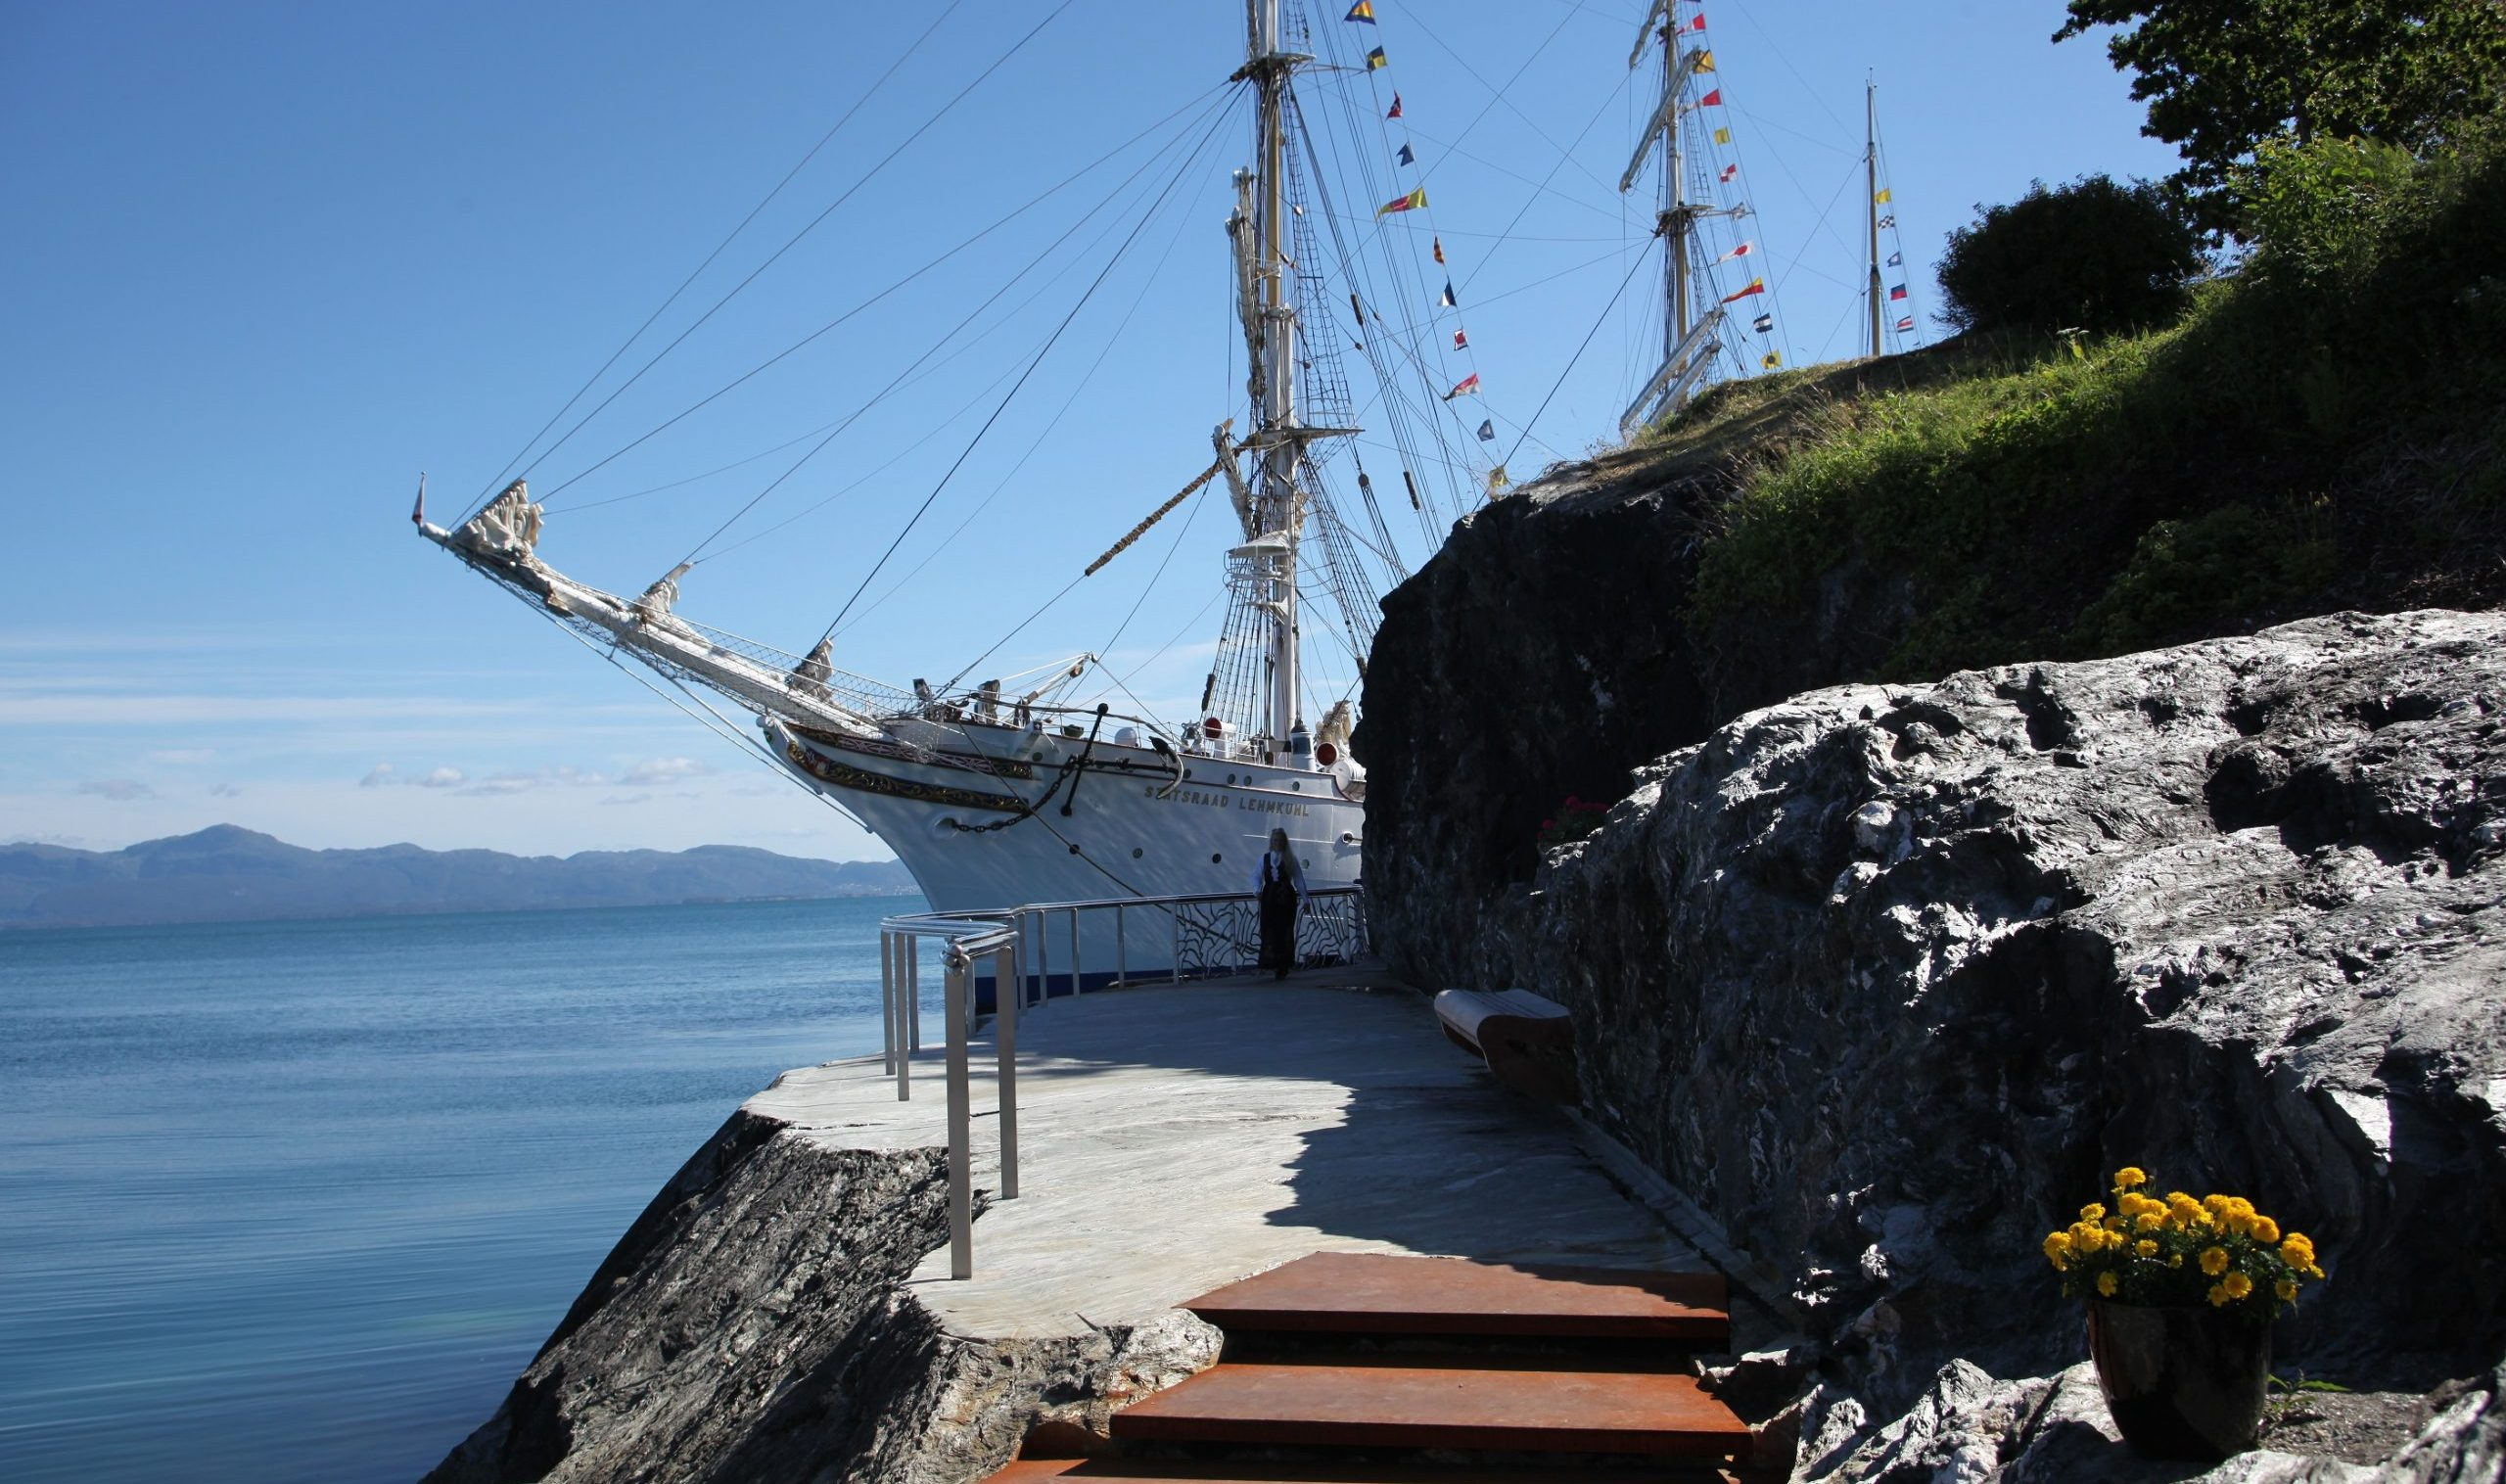 Statsraad Lehmkuhl at Solstrand